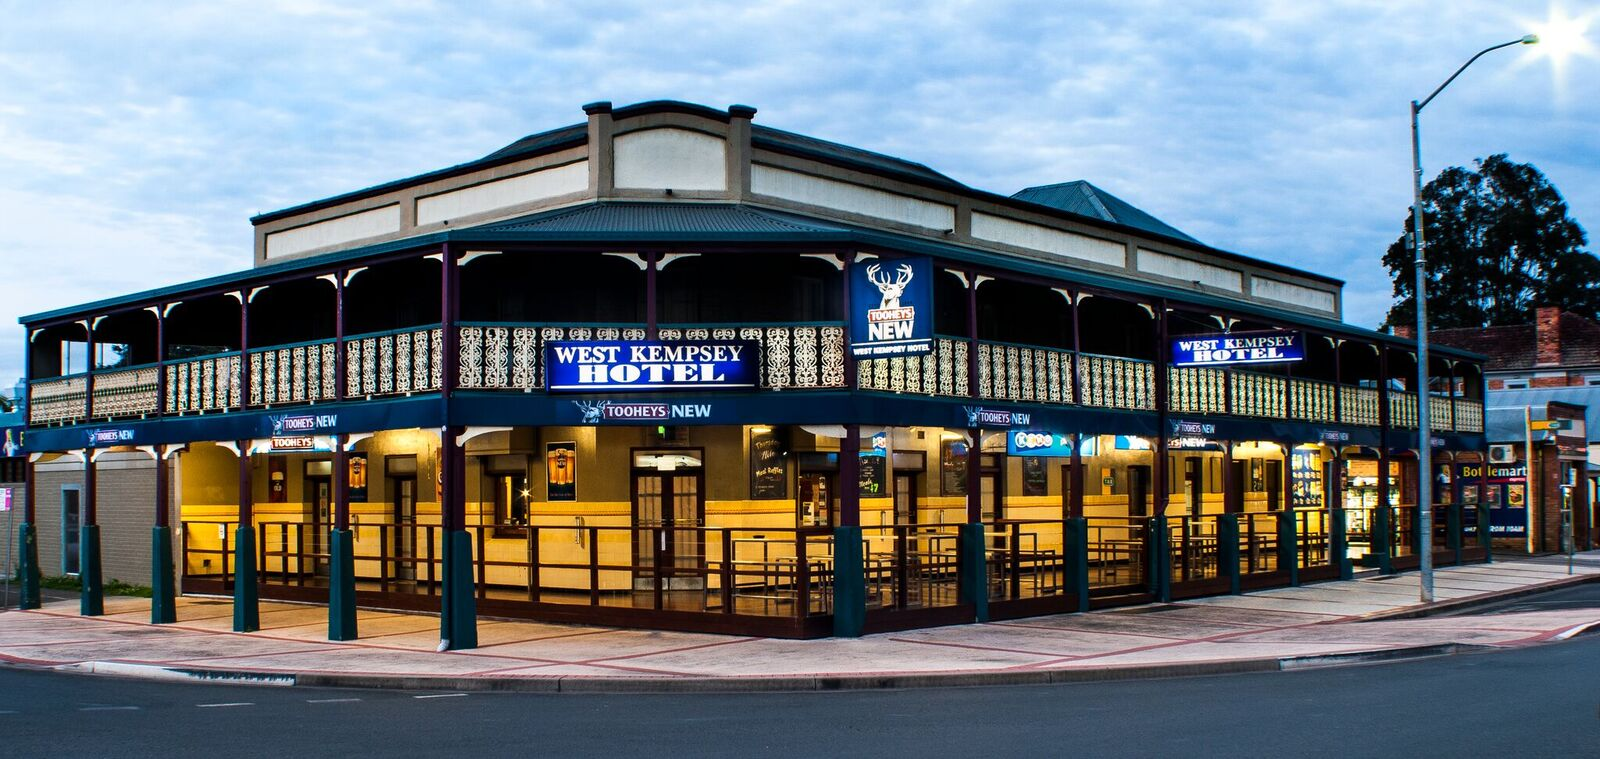 The West Kempsey Hotel